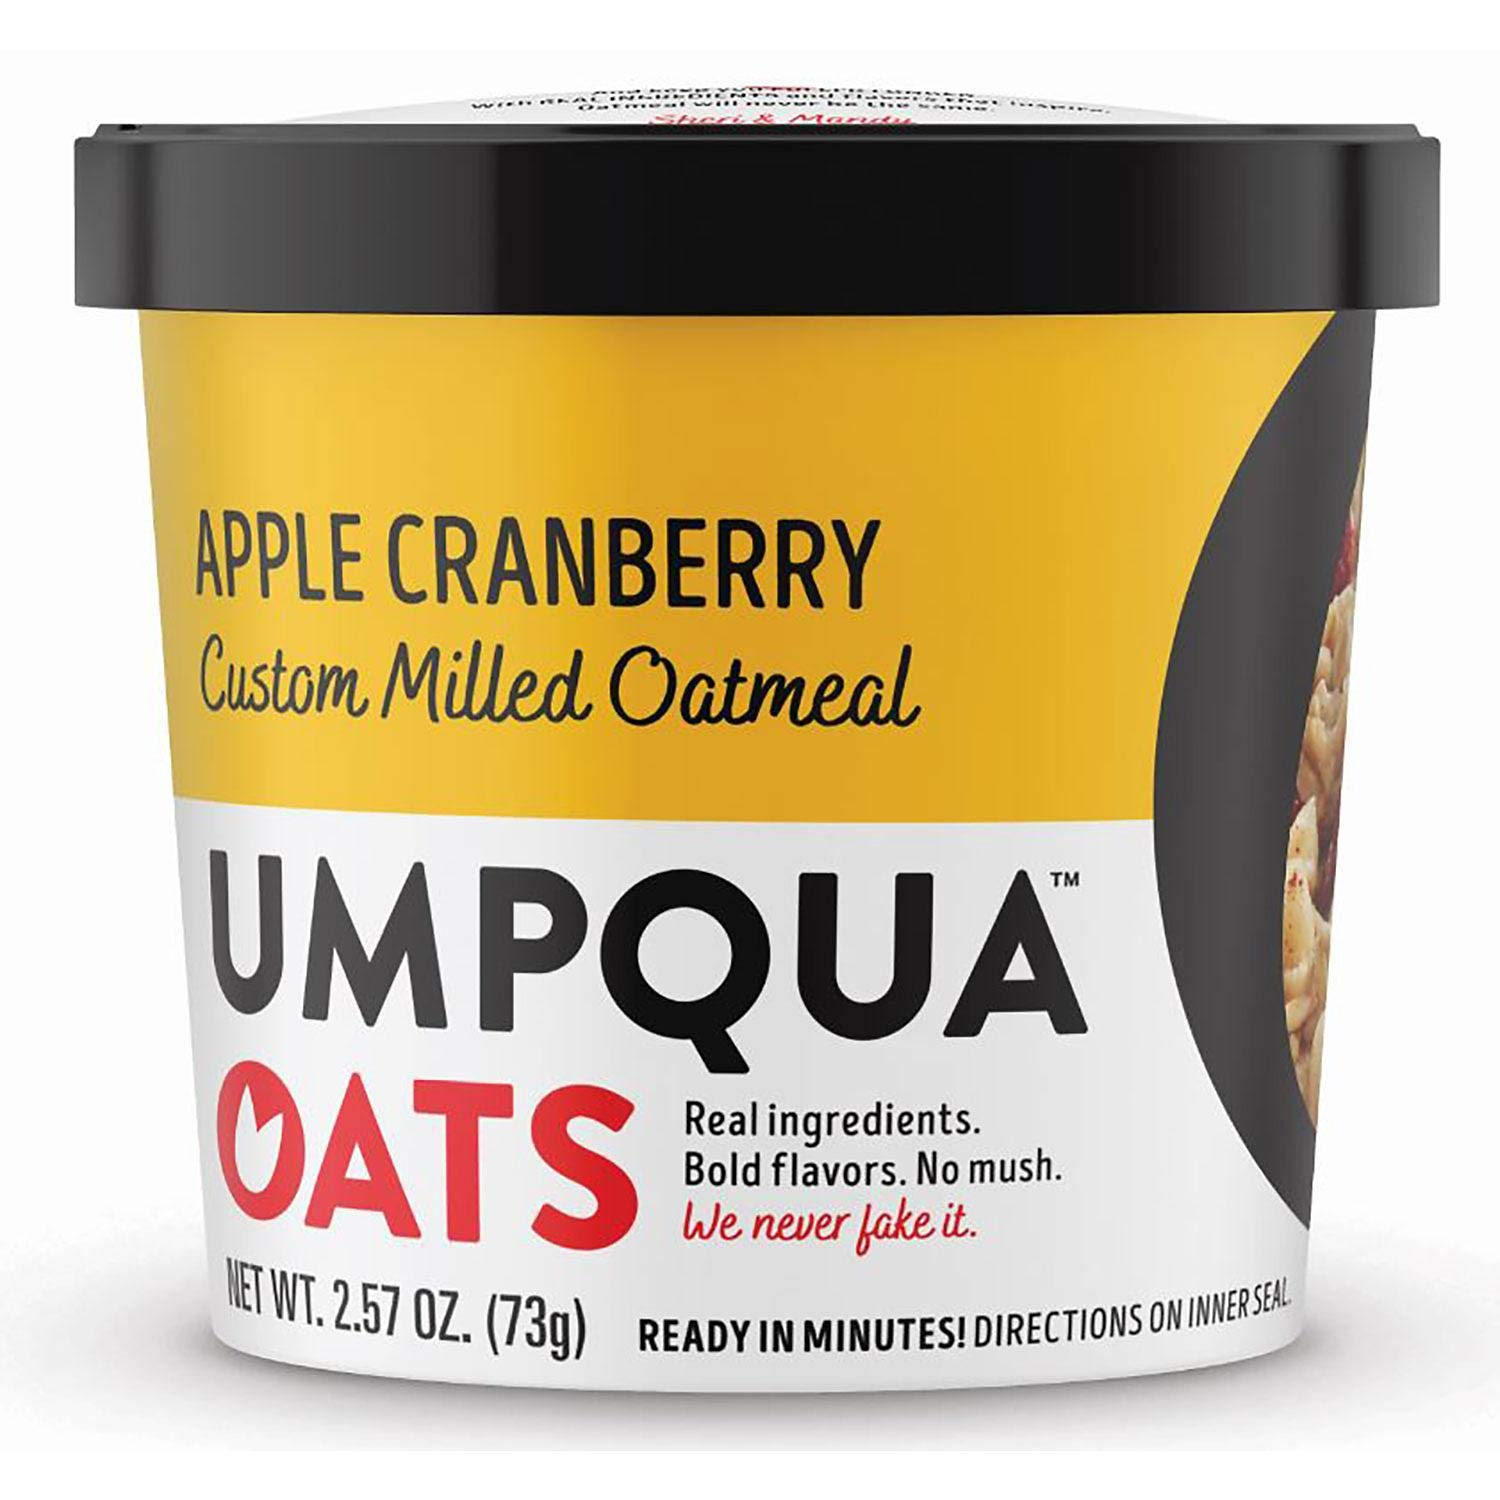 Evaxo Mostly Sunny Apple Cranberry Cinnamon Oatmeal (2.54 oz., 12 ct.)